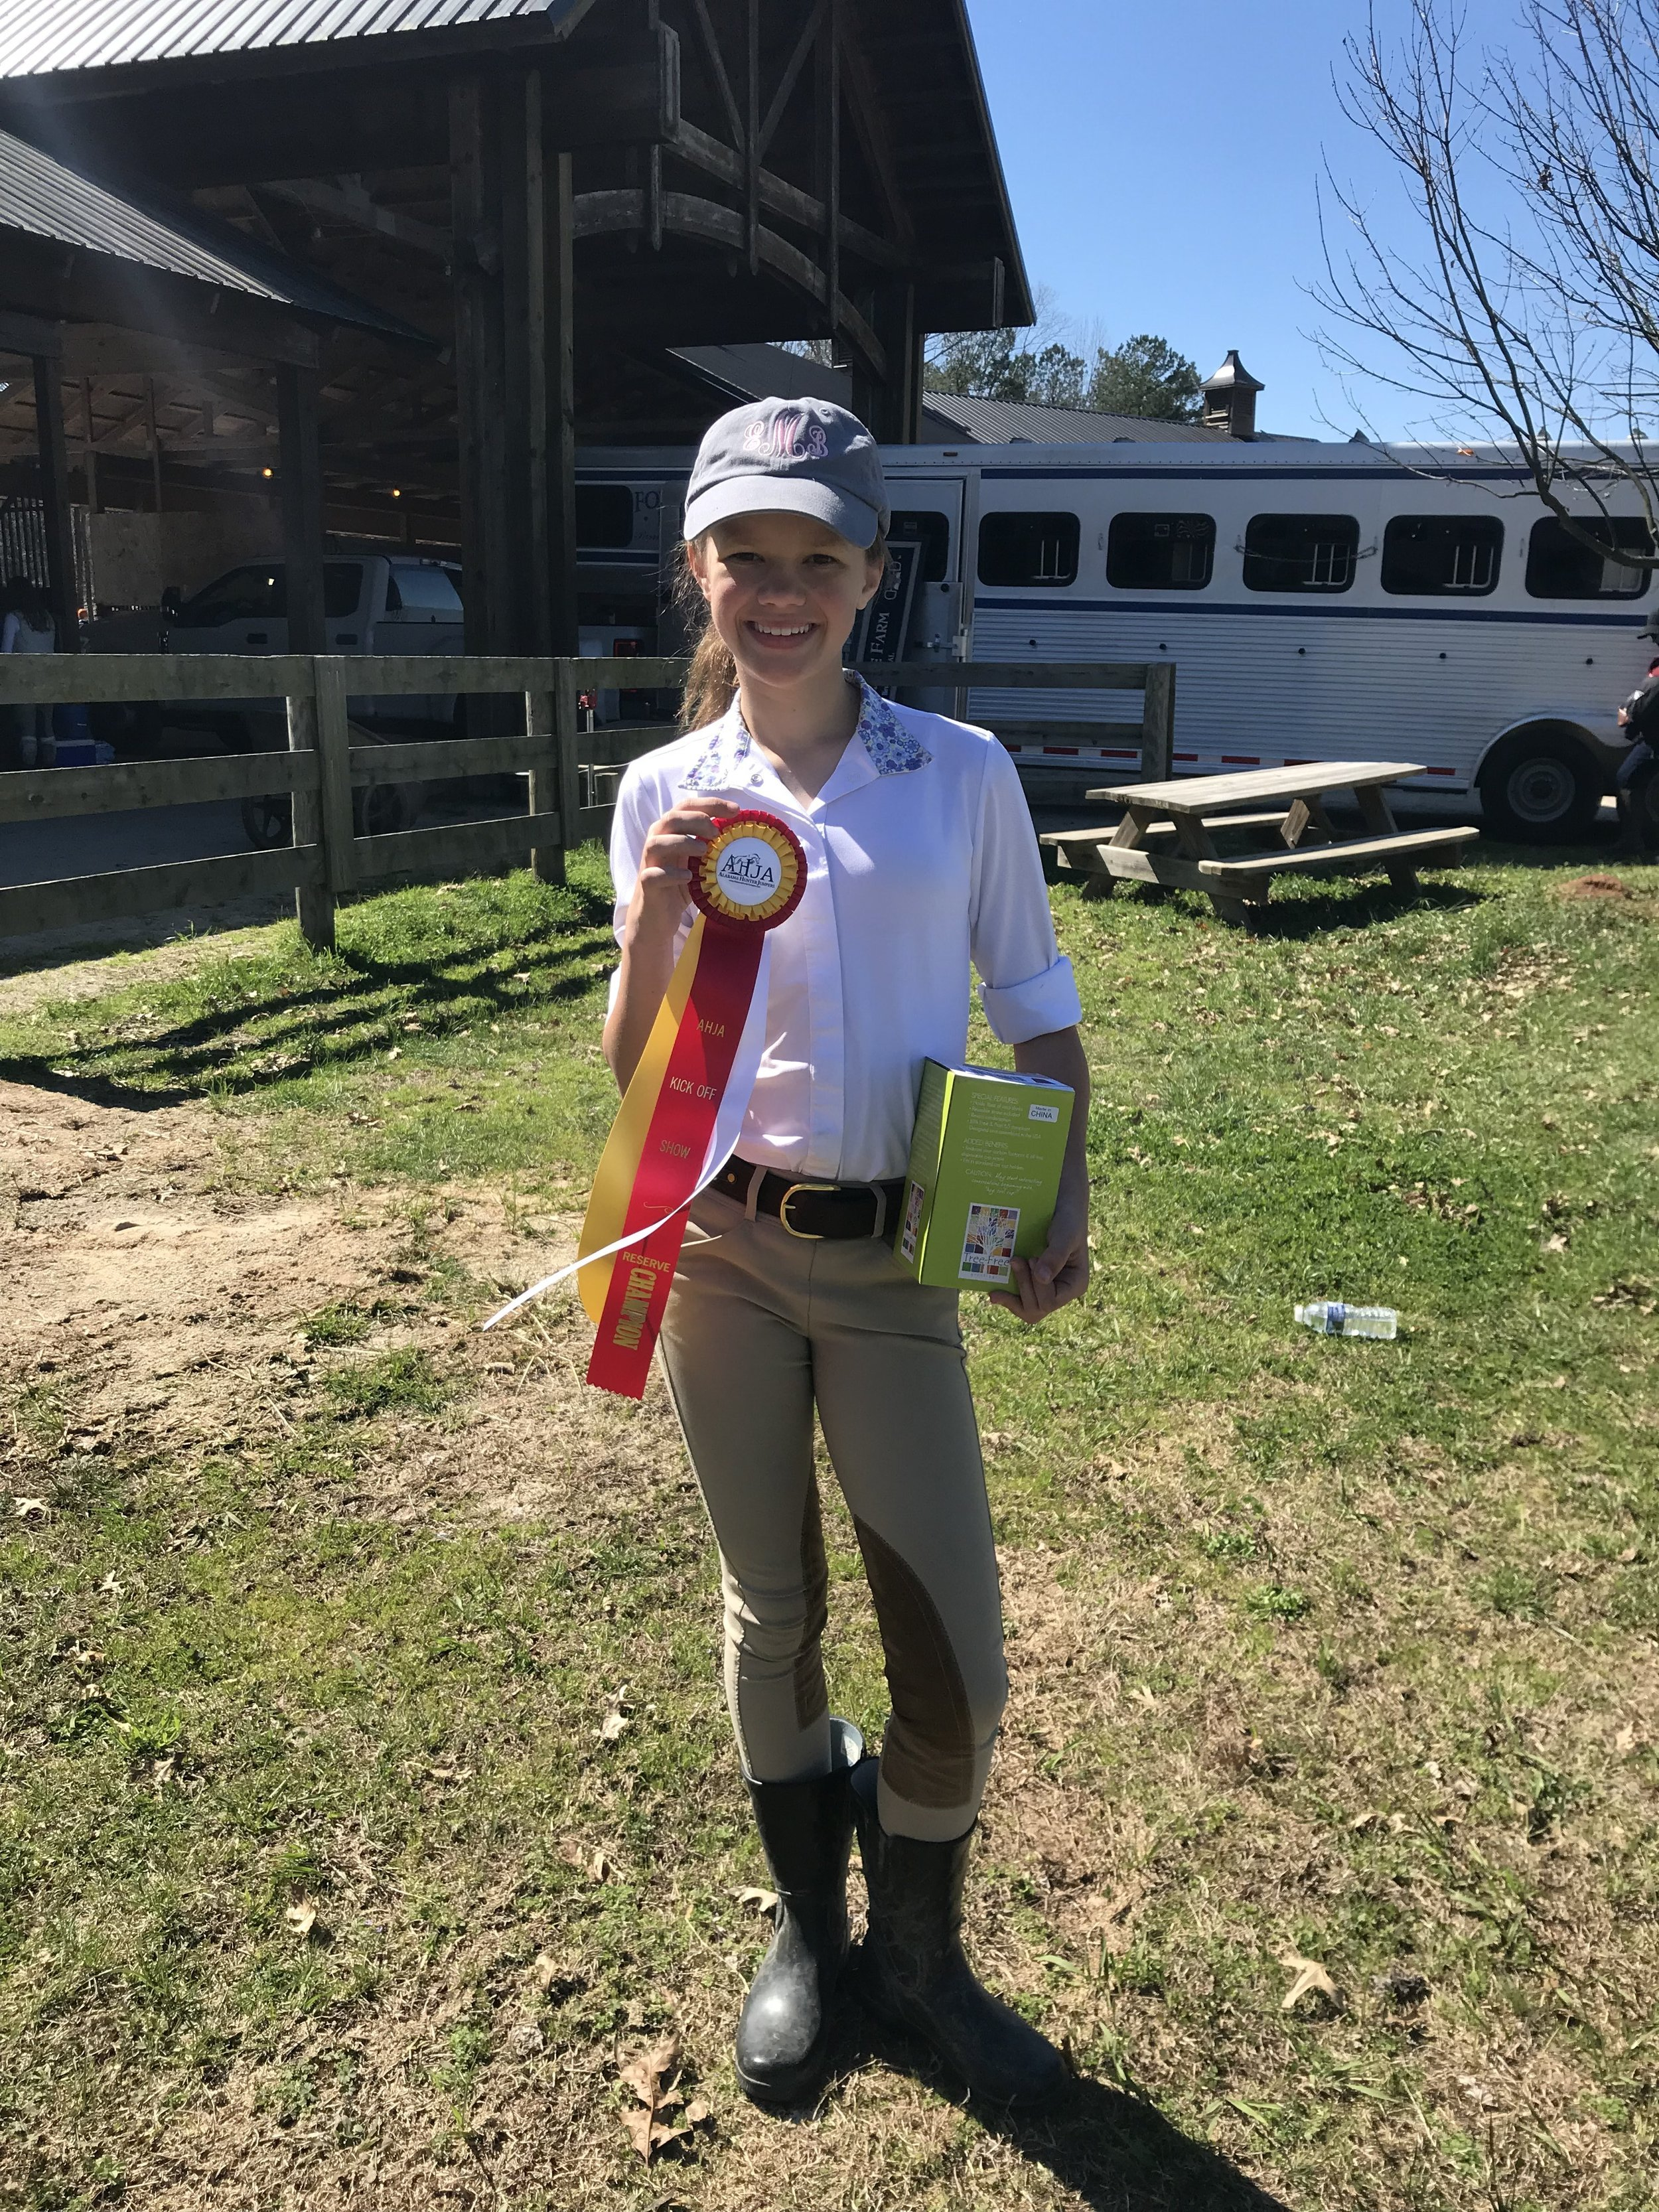 Bates Moody sporting her Reserve Champion ribbon and prize!